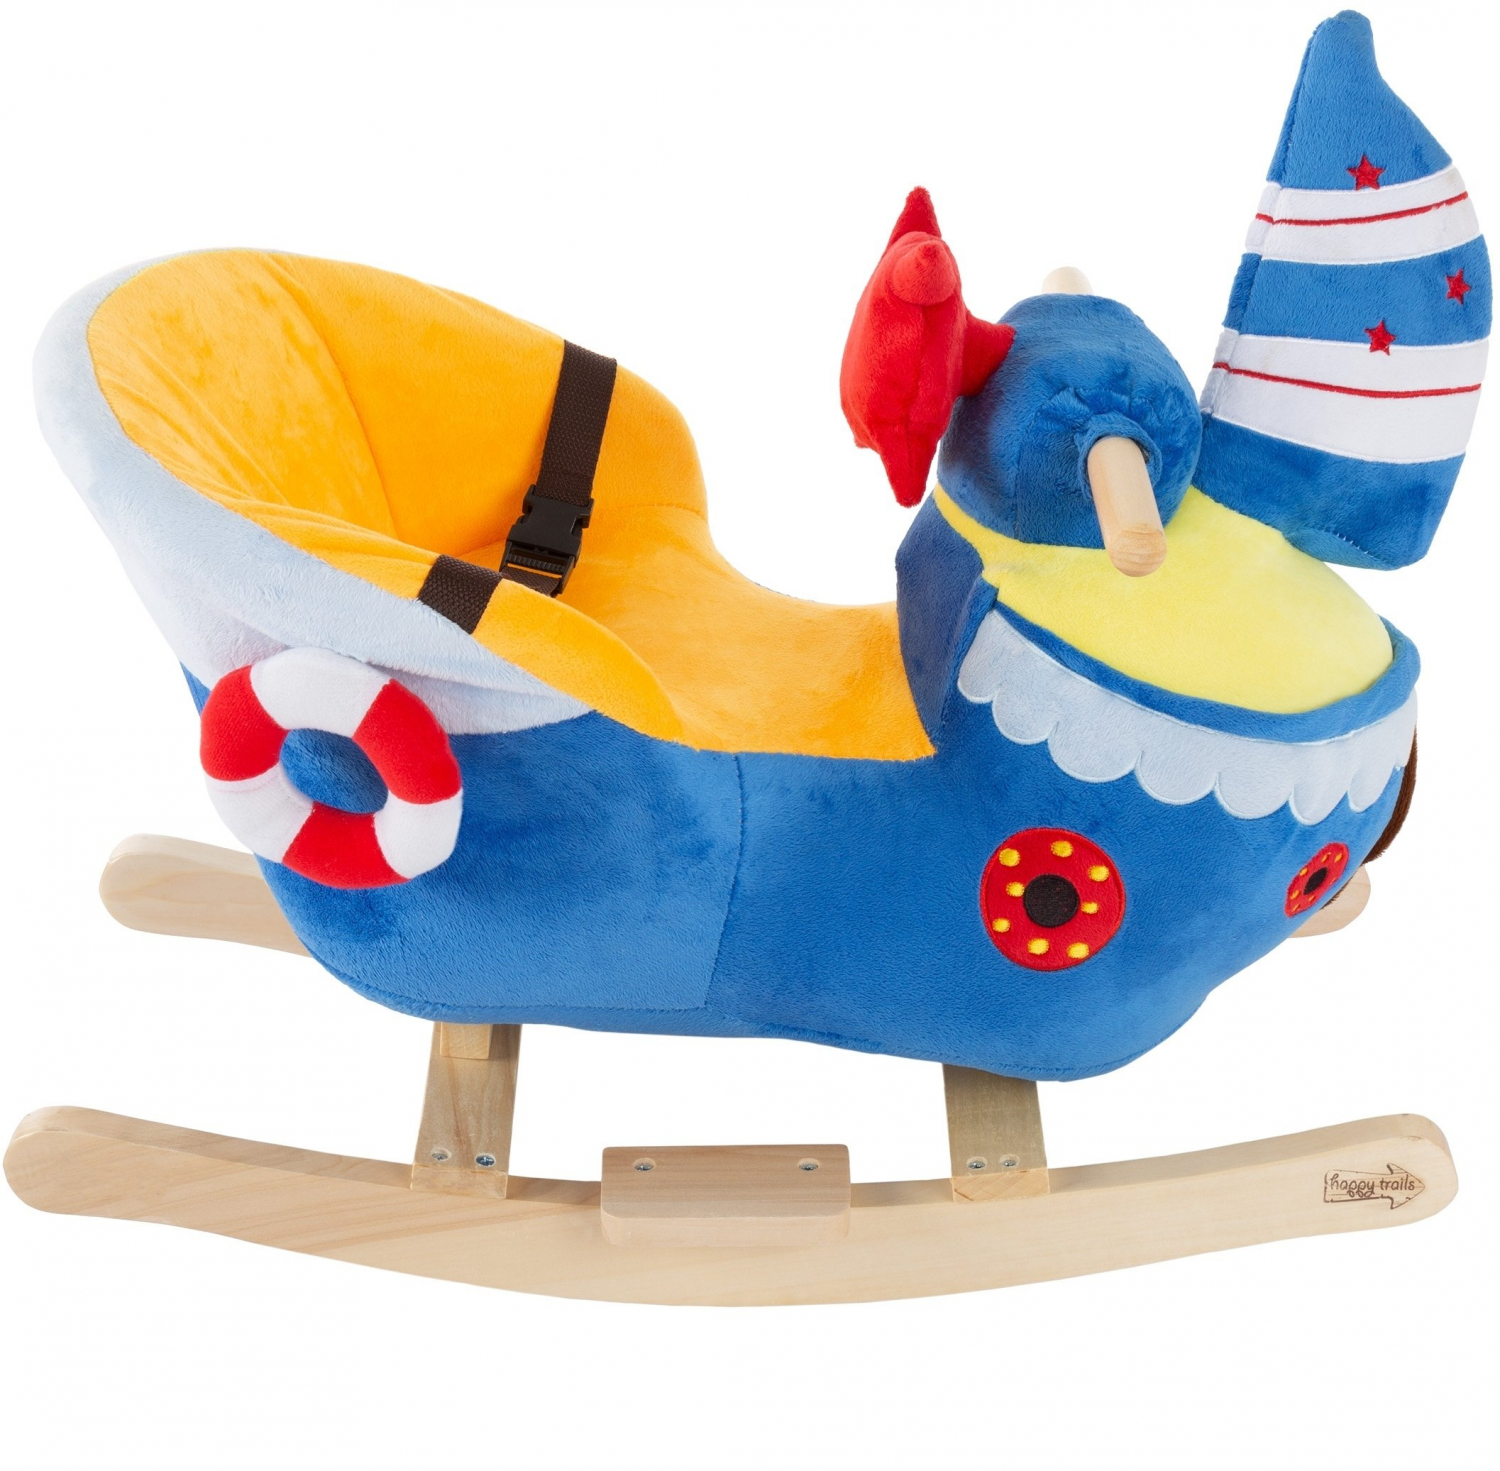 Details About Happy Trails Plush Boat Rocking Chair Kids Ride On Play Toy Toddler Rocker Seat